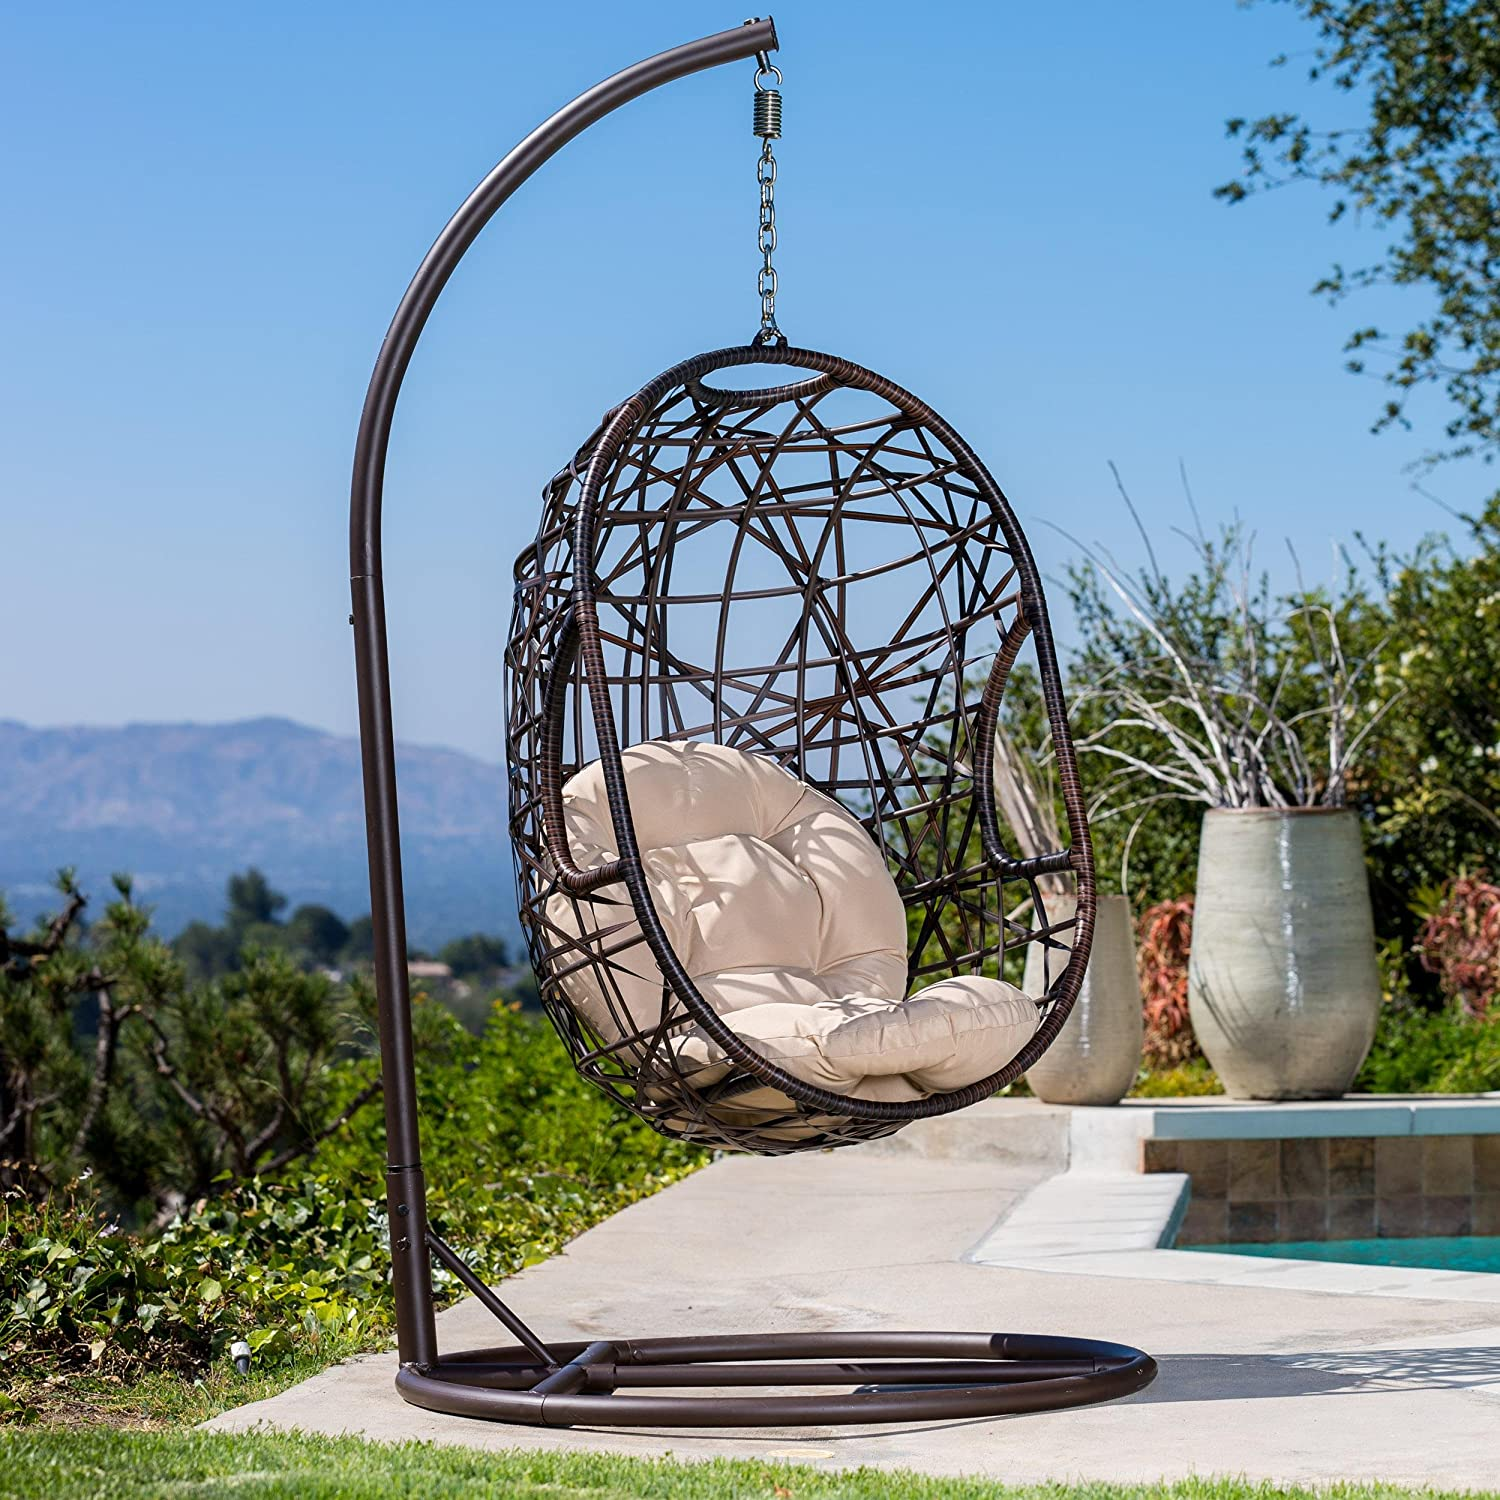 Guerneville Egg Shaped Swing Chair Amazon Home & Kitchen